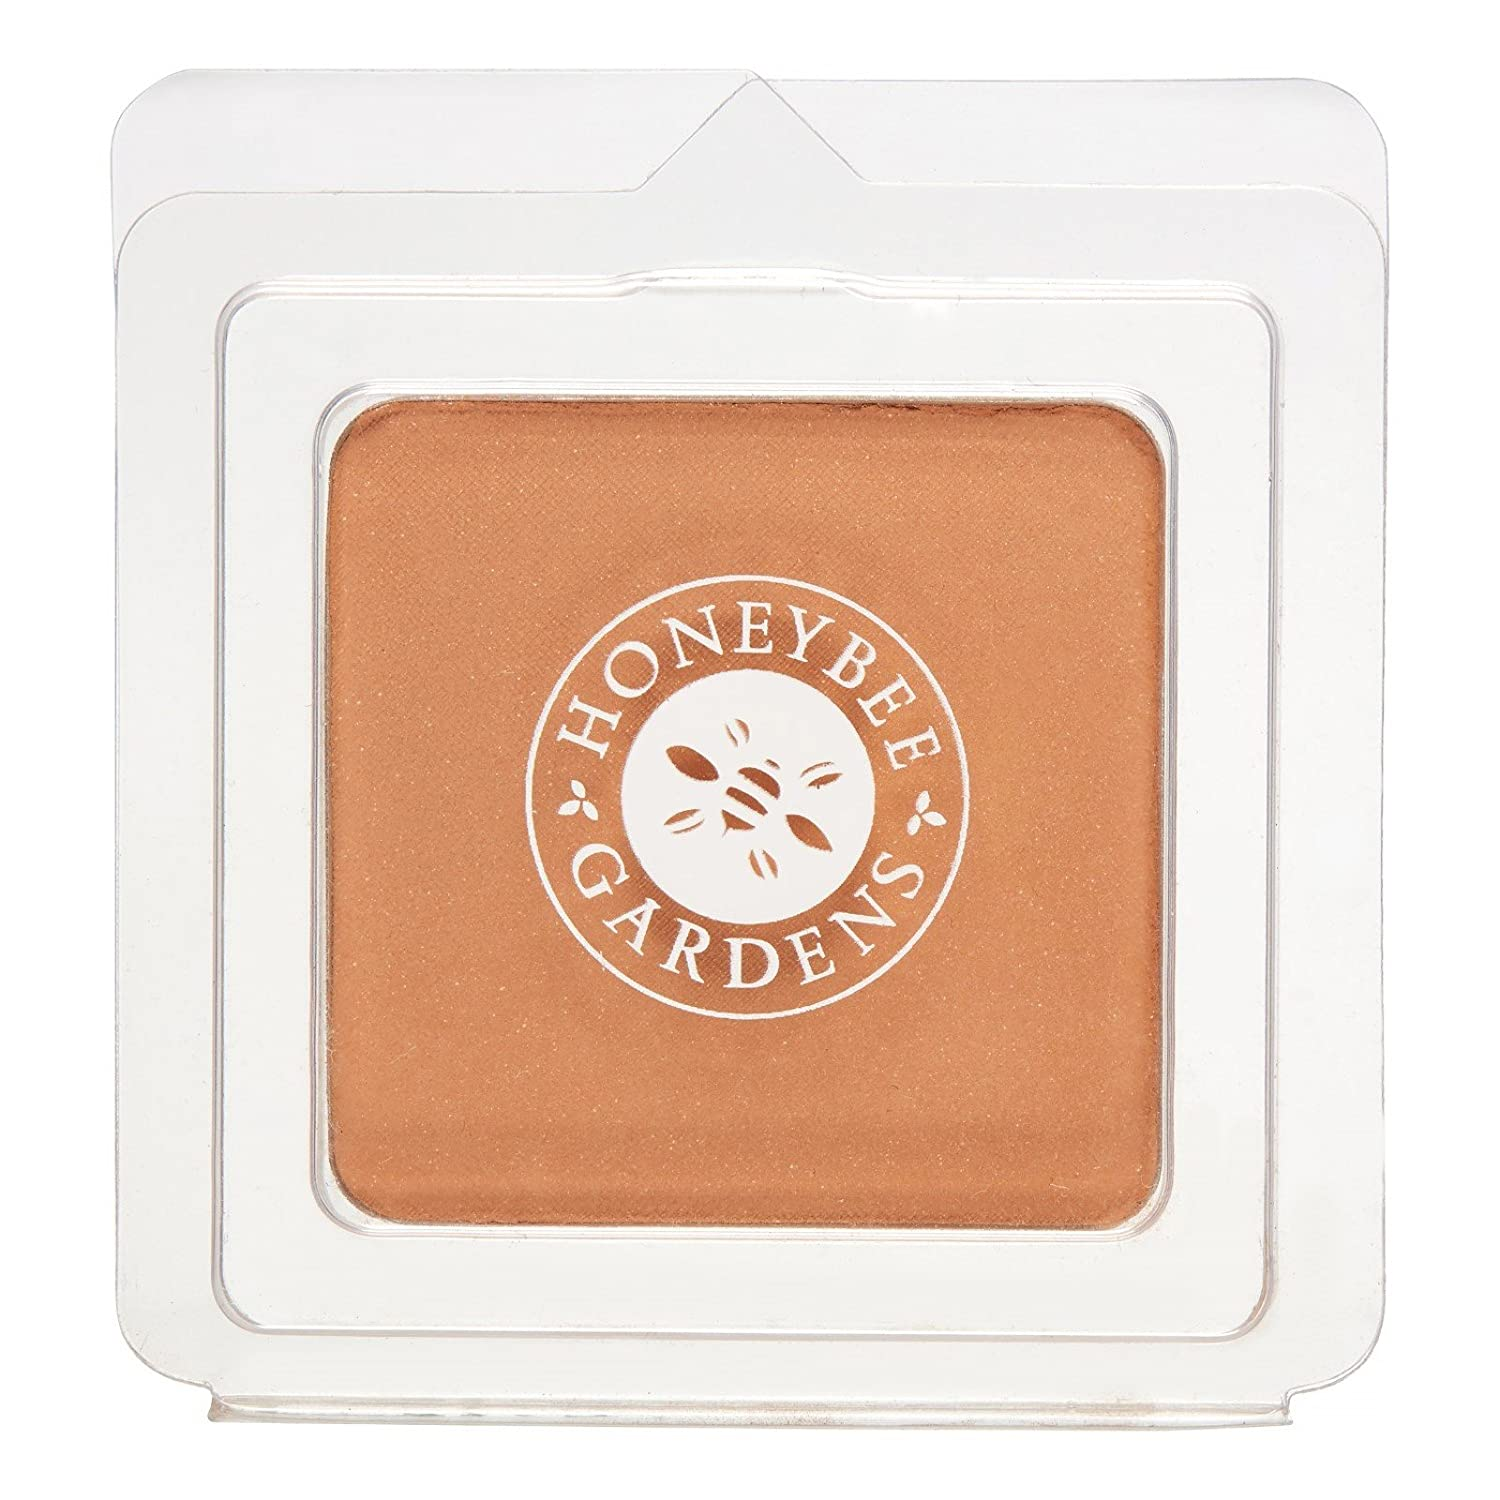 Honeybee Gardens Pressed Mineral Powder Foundation Refill, Sundance